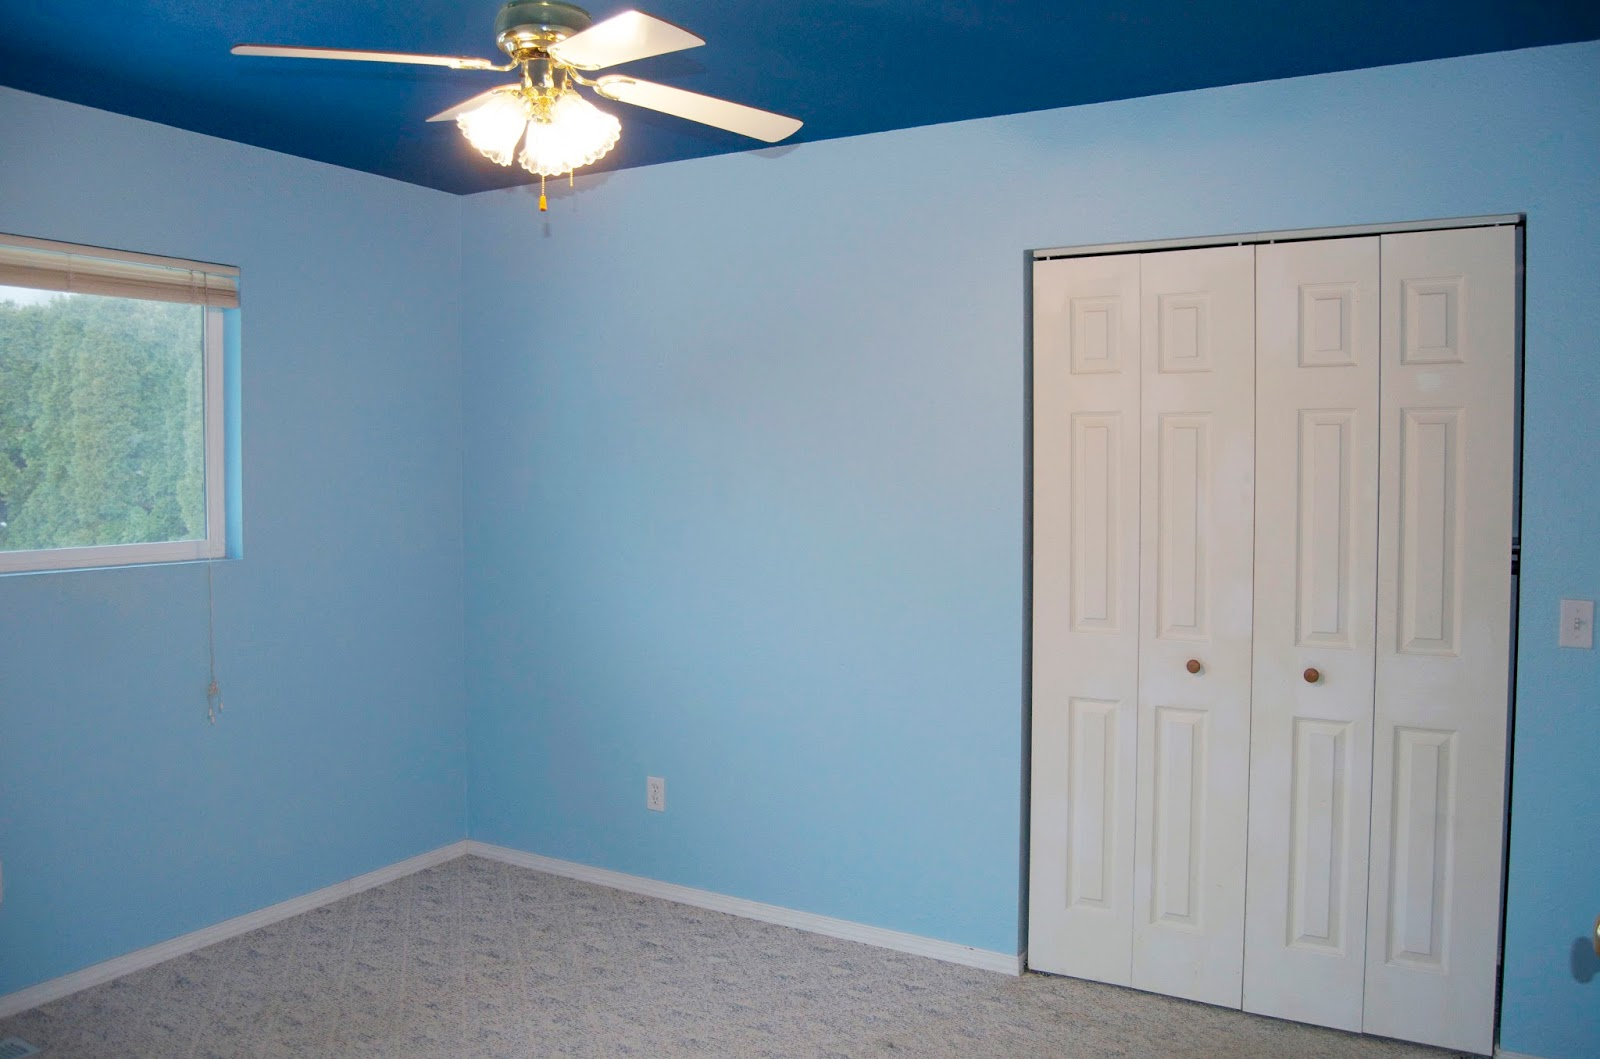 This Simple Paint Color Update Weu0027ve Made, From The All Blue Room Above To  The More Modern, Neutral And Versatile Room, Will Grow With The Boys And  Allows ...